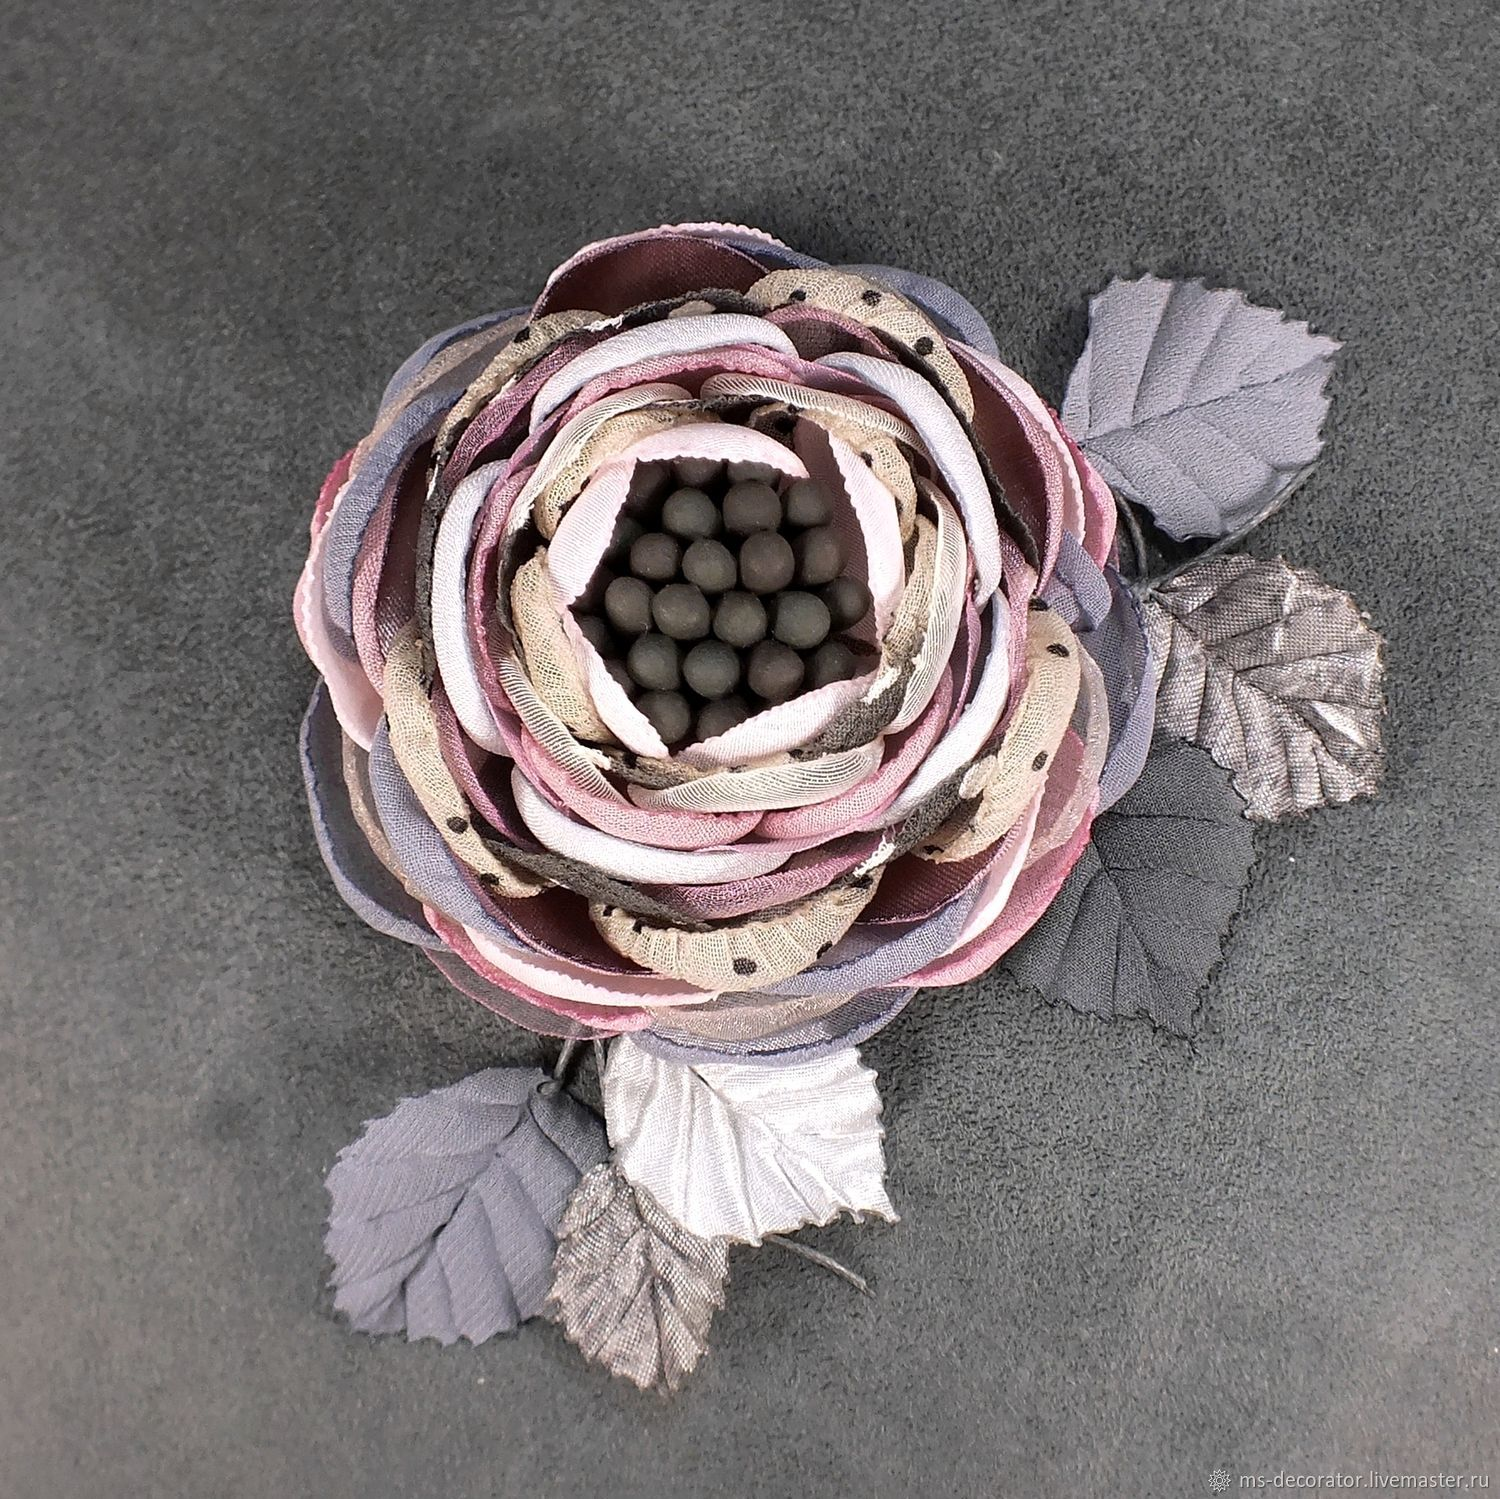 The brooch is handmade from a fabric of Daddy's girl, Brooches, St. Petersburg,  Фото №1